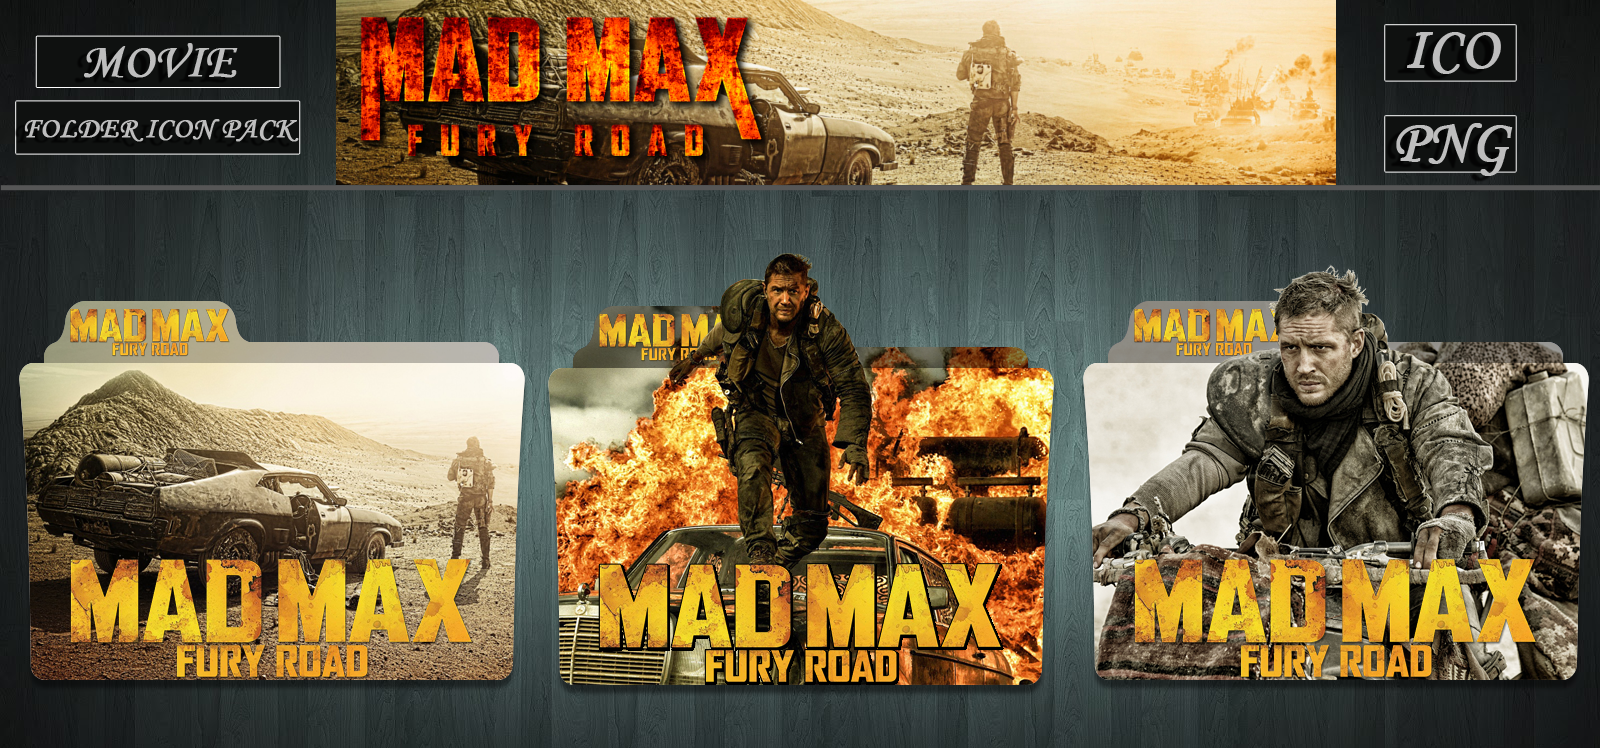 Mad Max Fury Road 2015 Folder Icon Pack By Zsotti60 On